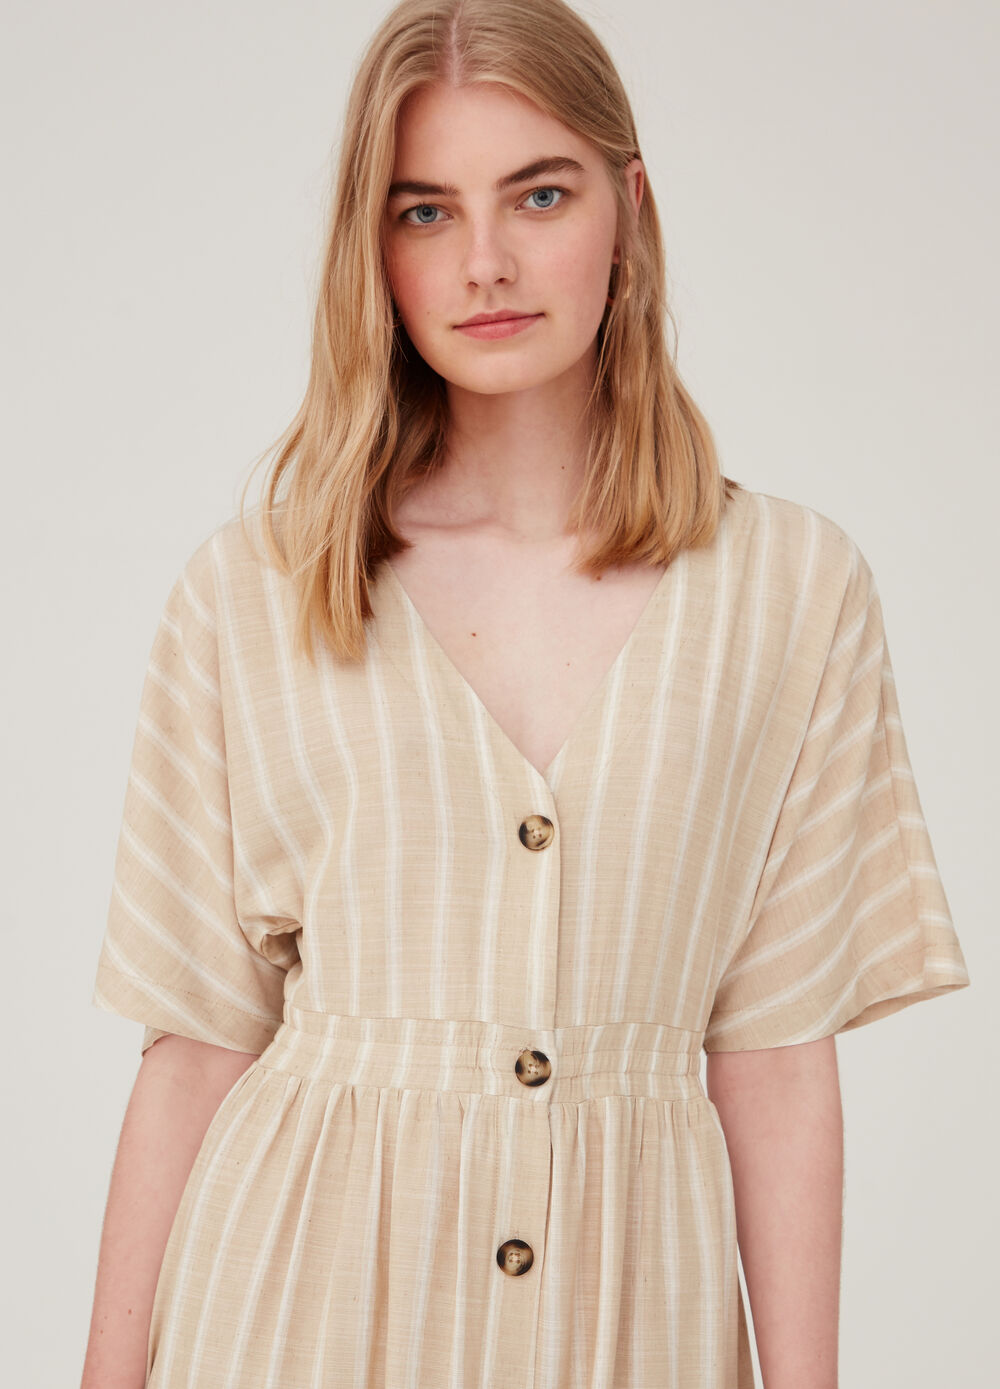 Viscose and linen dress with striped buttons